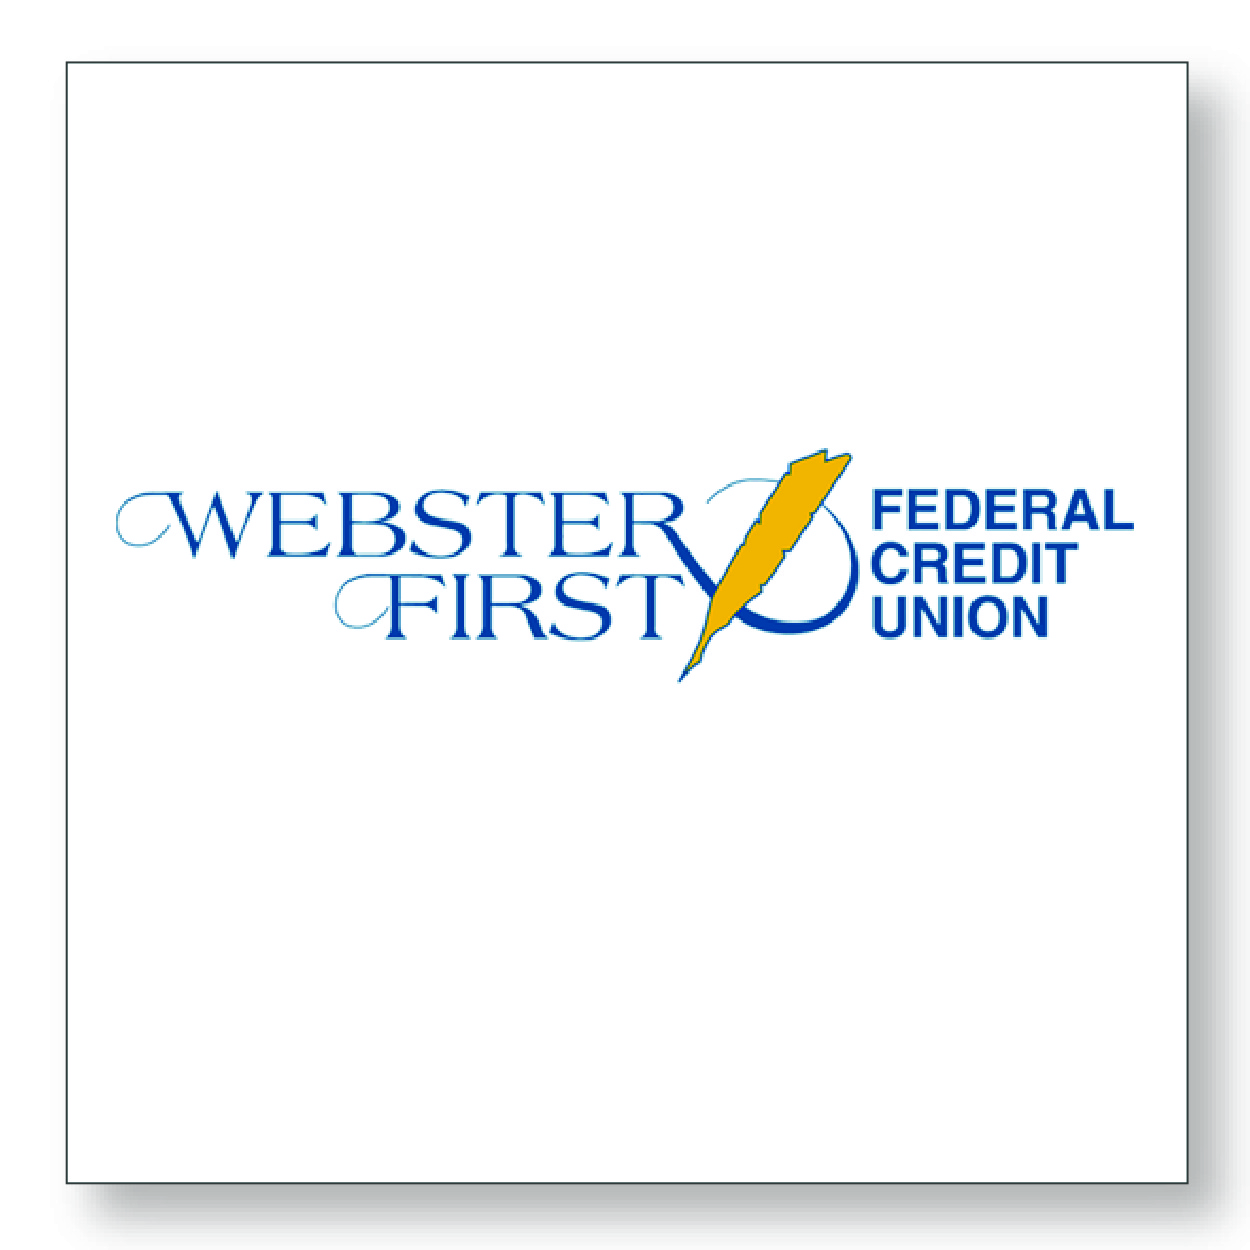 Webster First Credit Union